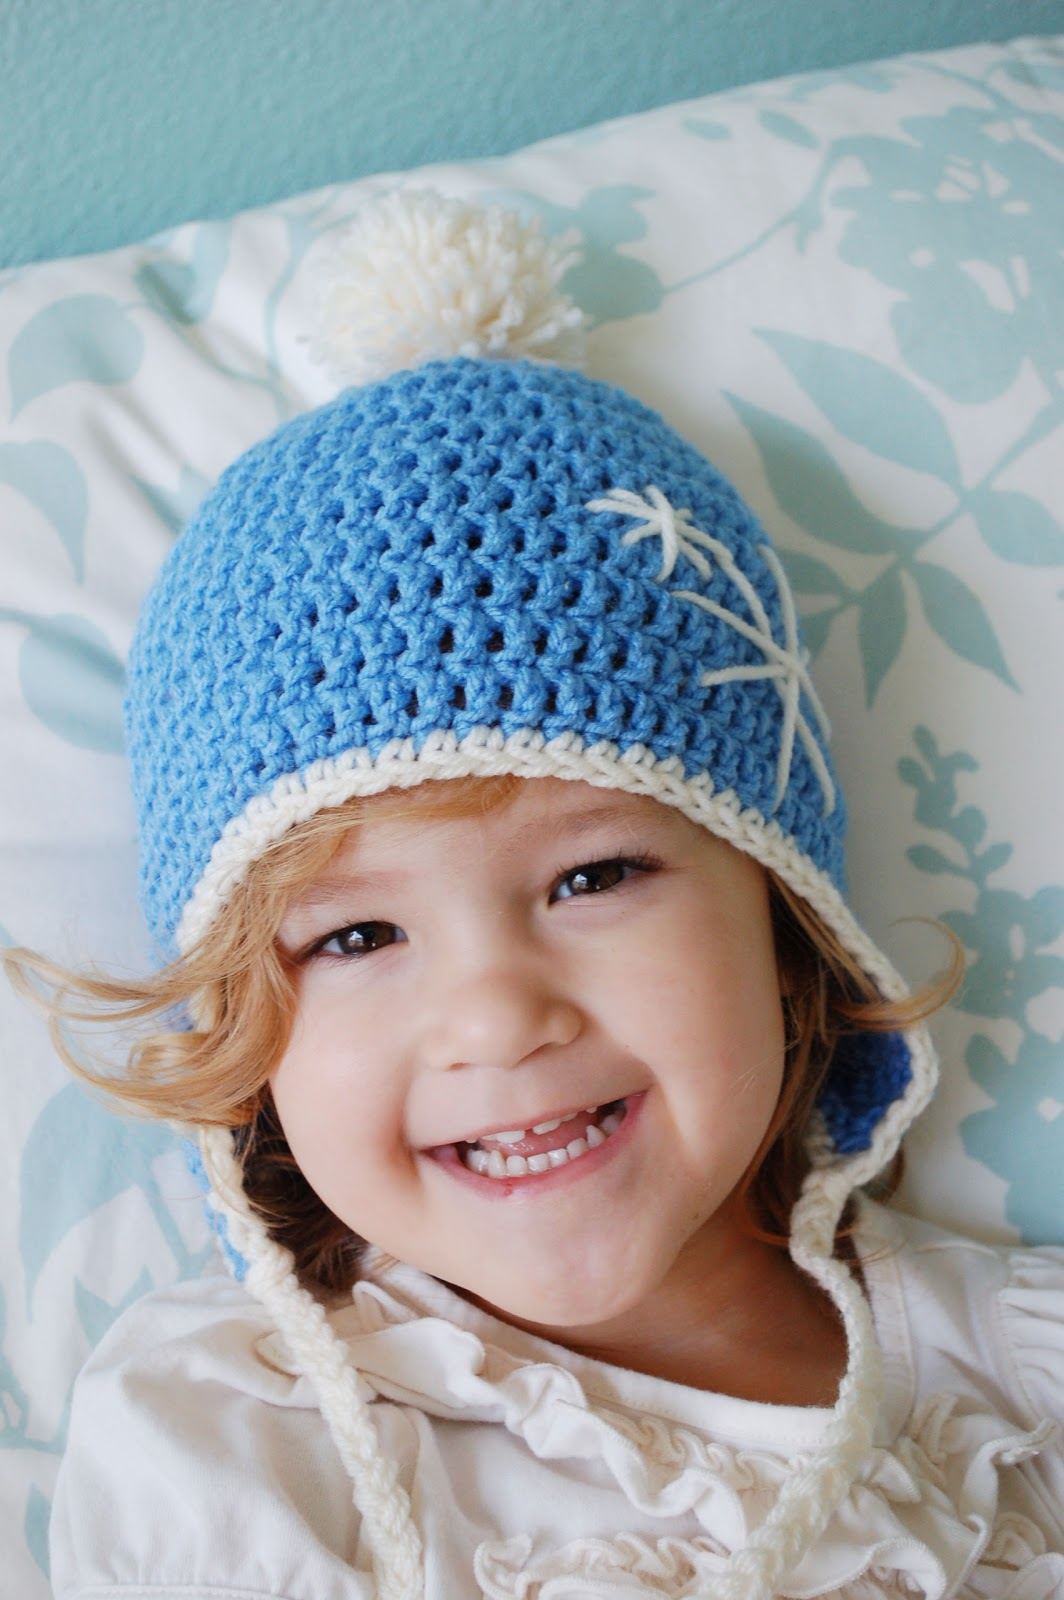 Alli crafts free pattern earflap hat toddler free pattern earflap hat toddler bankloansurffo Gallery